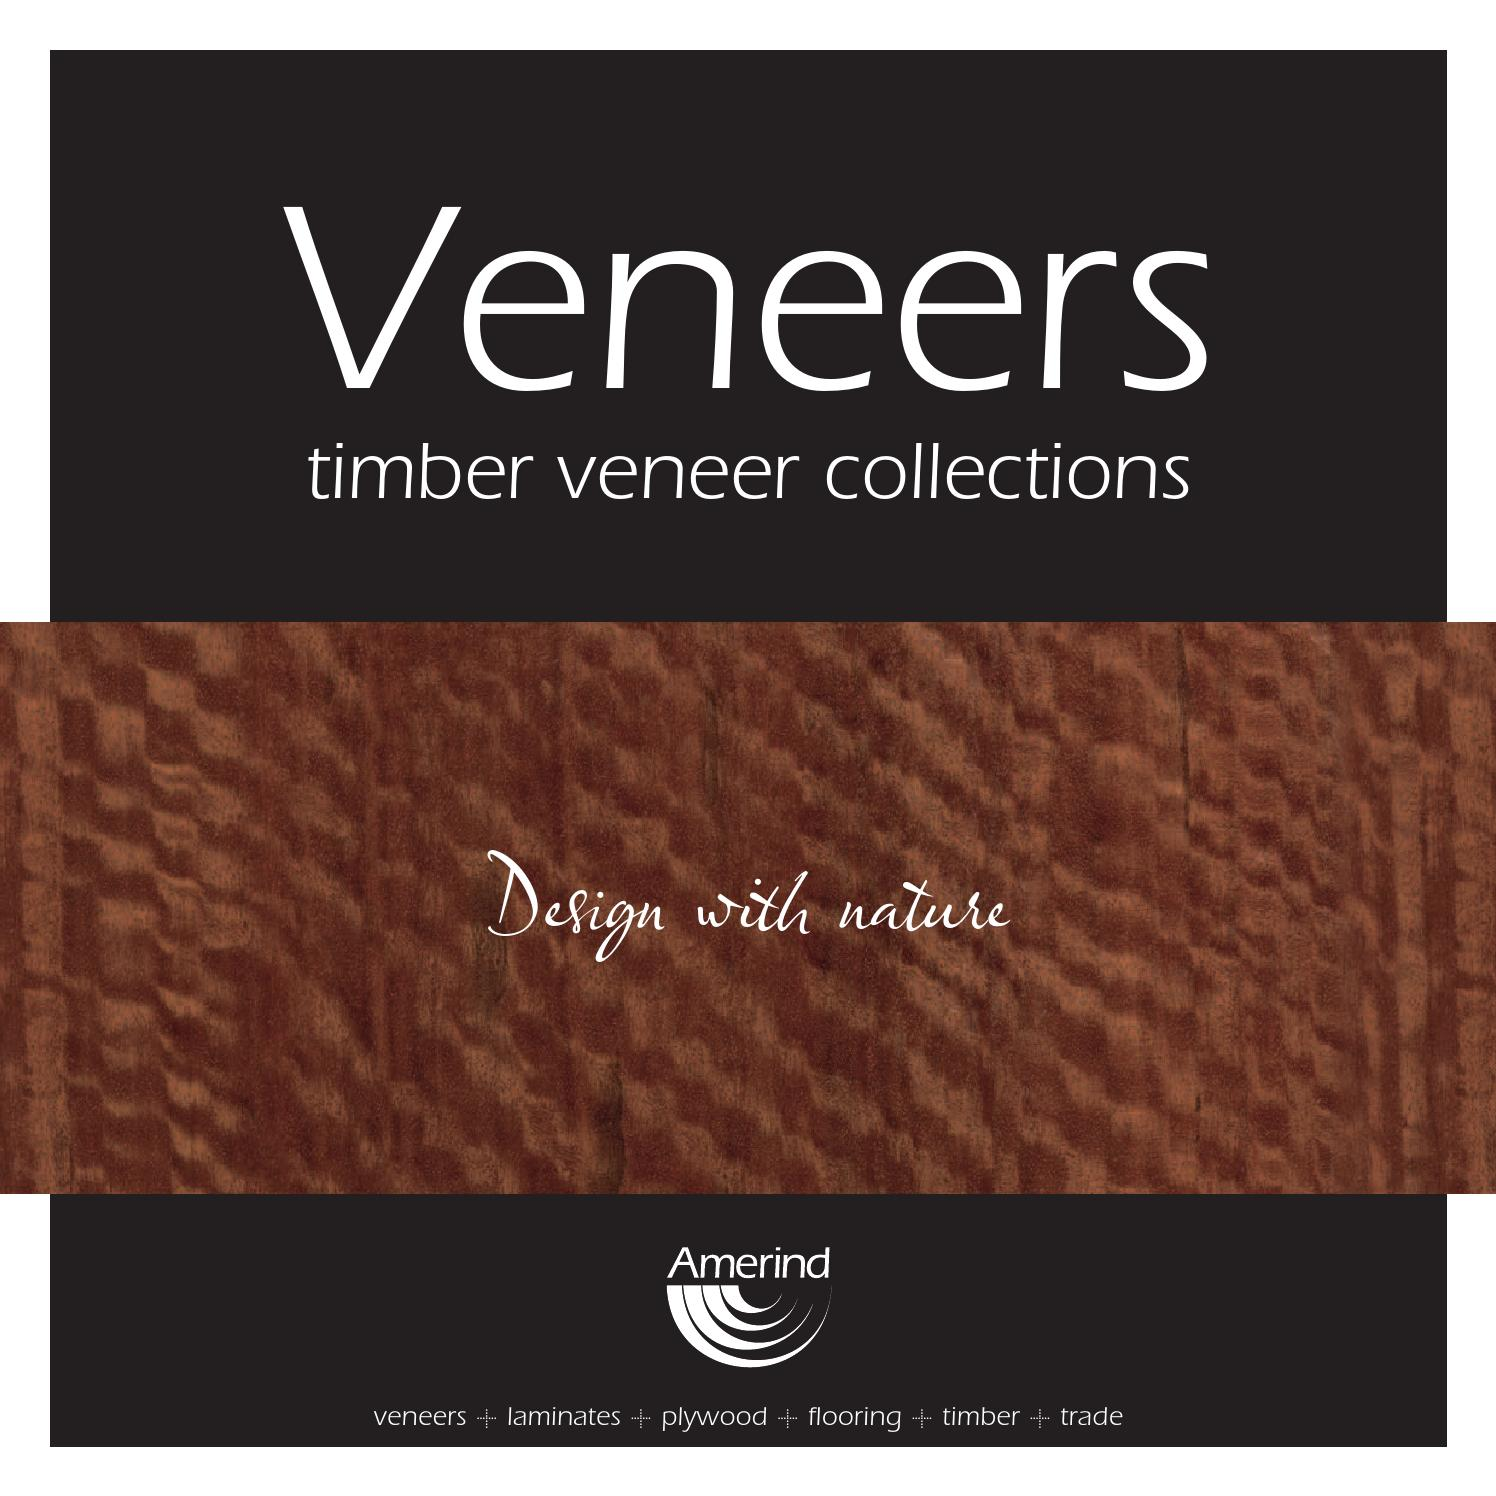 Timber Veneer Perth Amerind Timber Veneers By Nose To Tail Pty Ltd Issuu